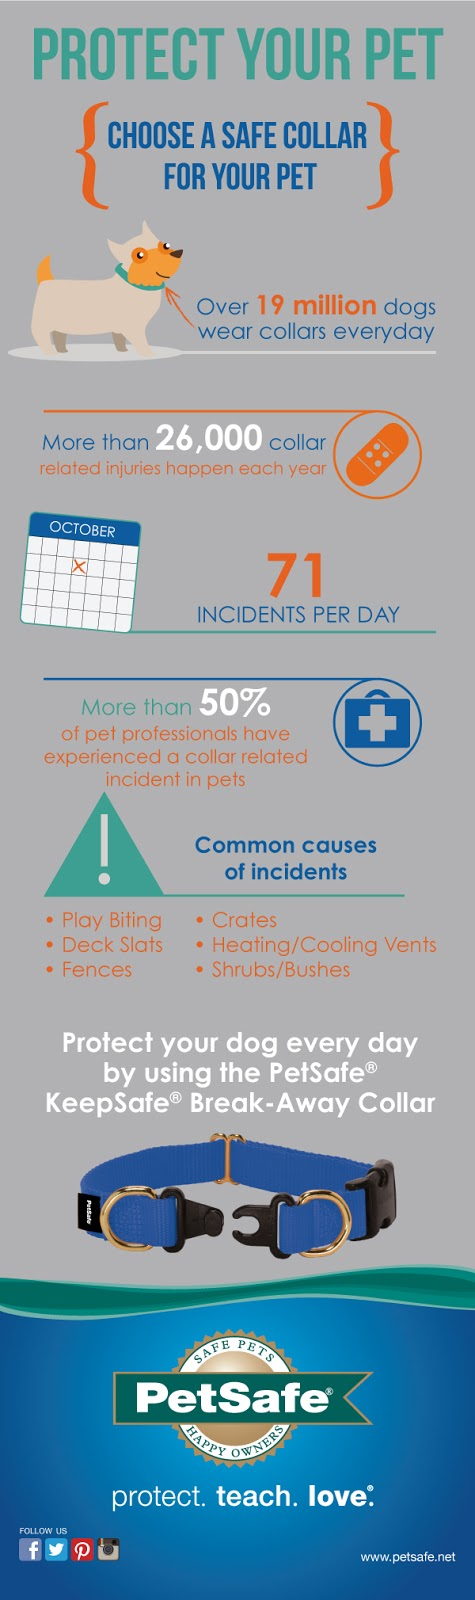 PetSafe's infographic about collar safety and choosing a safe collar for your pet